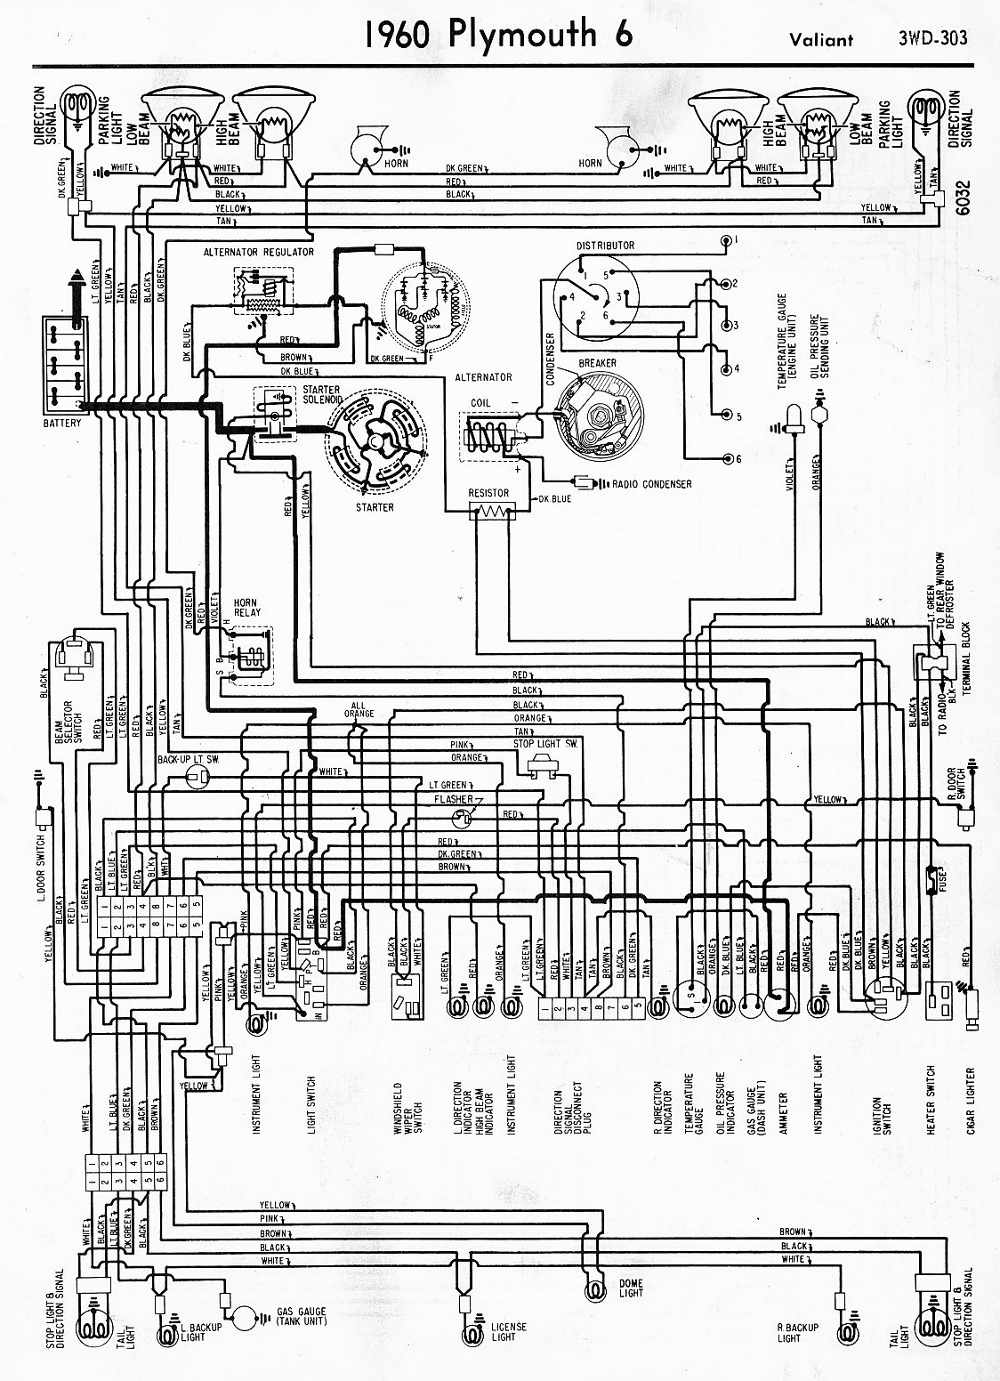 1968 Plymouth Barracuda Wiring Diagram Excellent Electrical Gtx For Roadrunner Library Rh 69 Mac Happen De 68 Camaro Dash